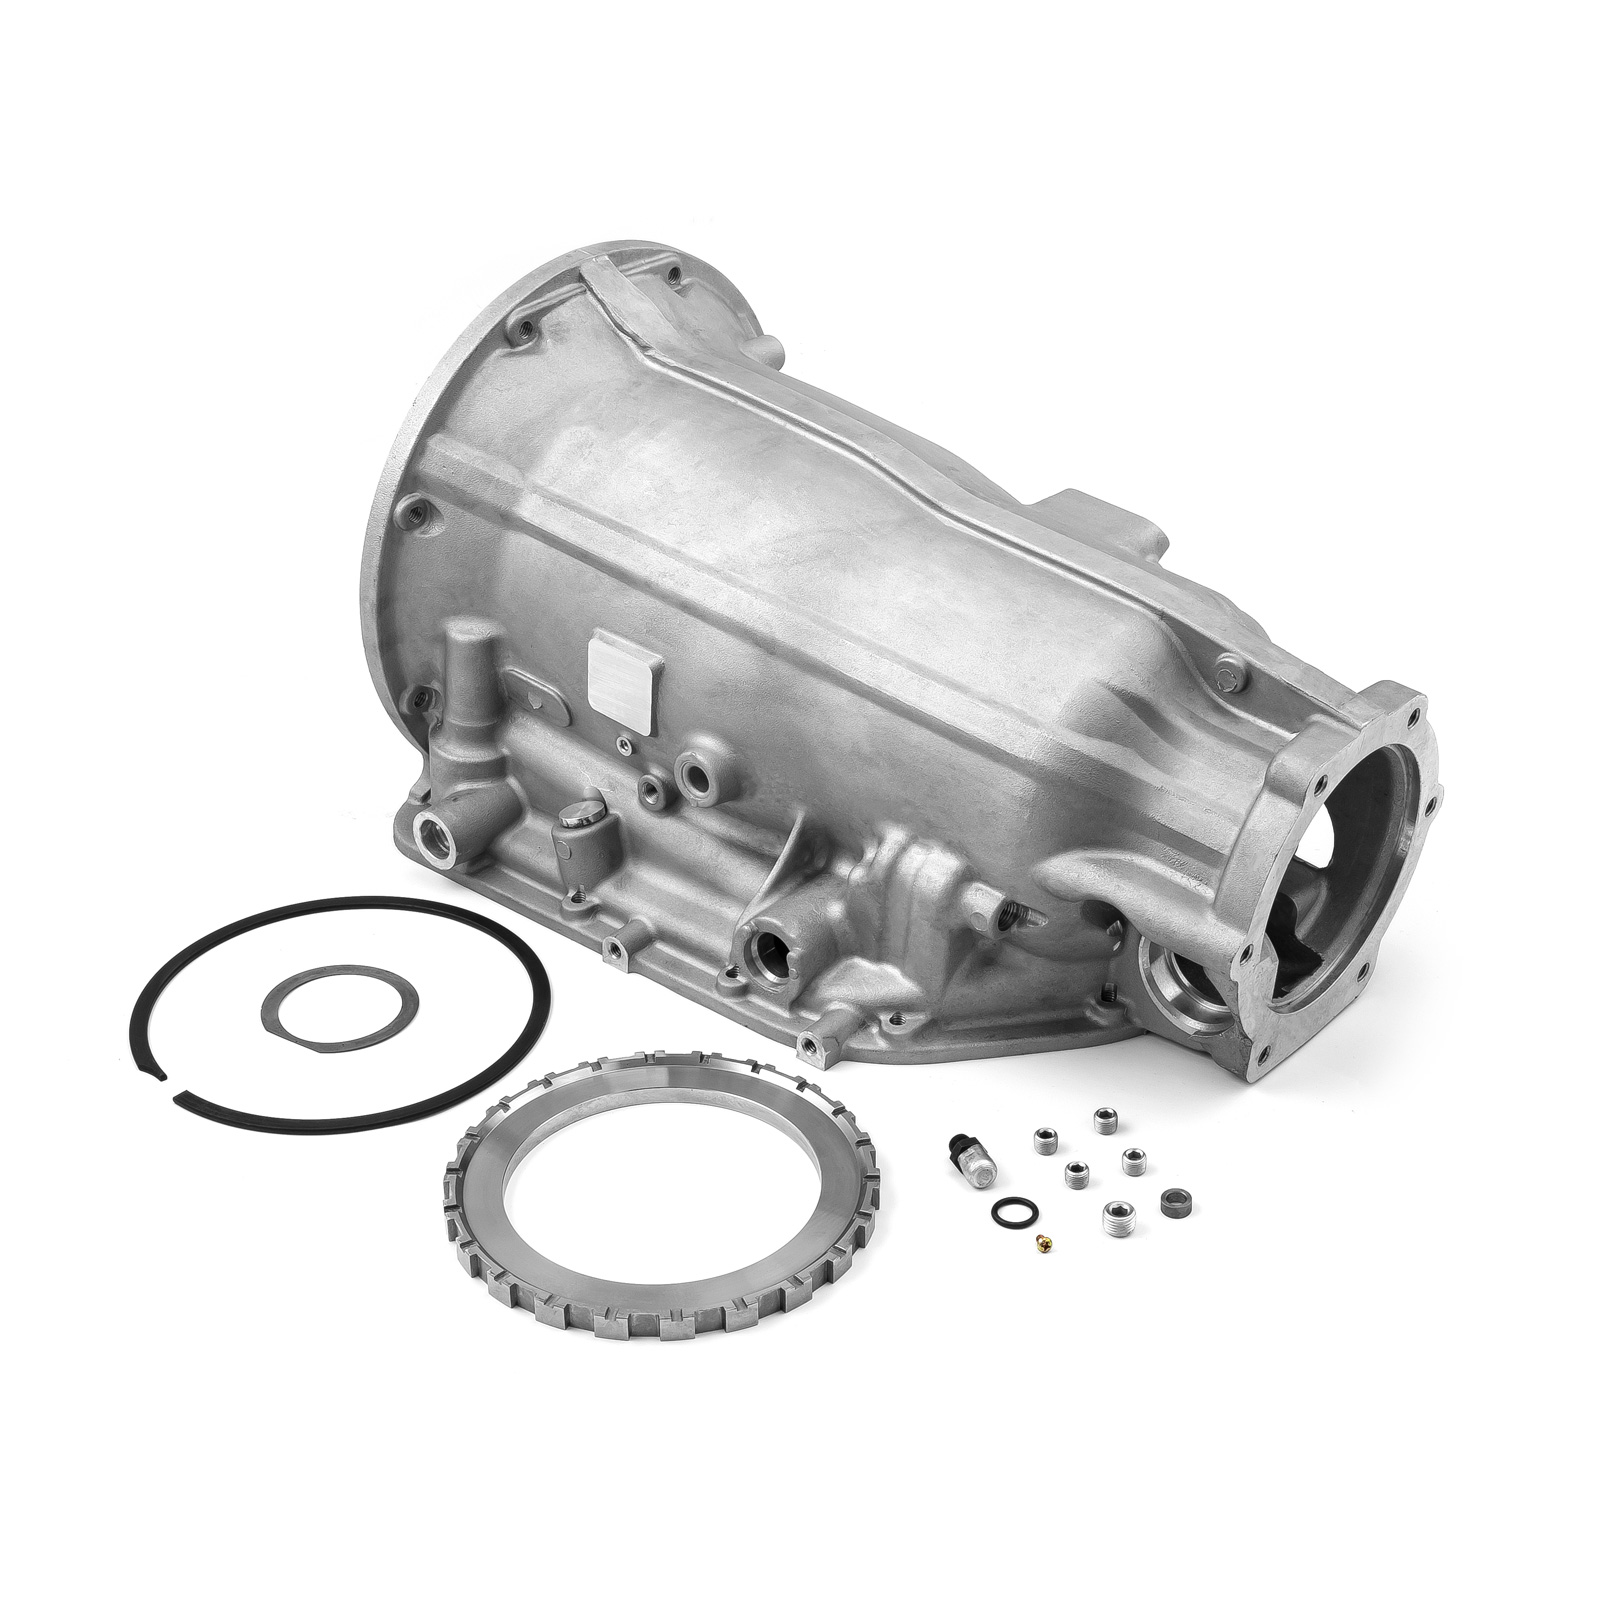 Turbo 400 TH400 Aluminum Heavy Duty Transmission Case SFI Approved